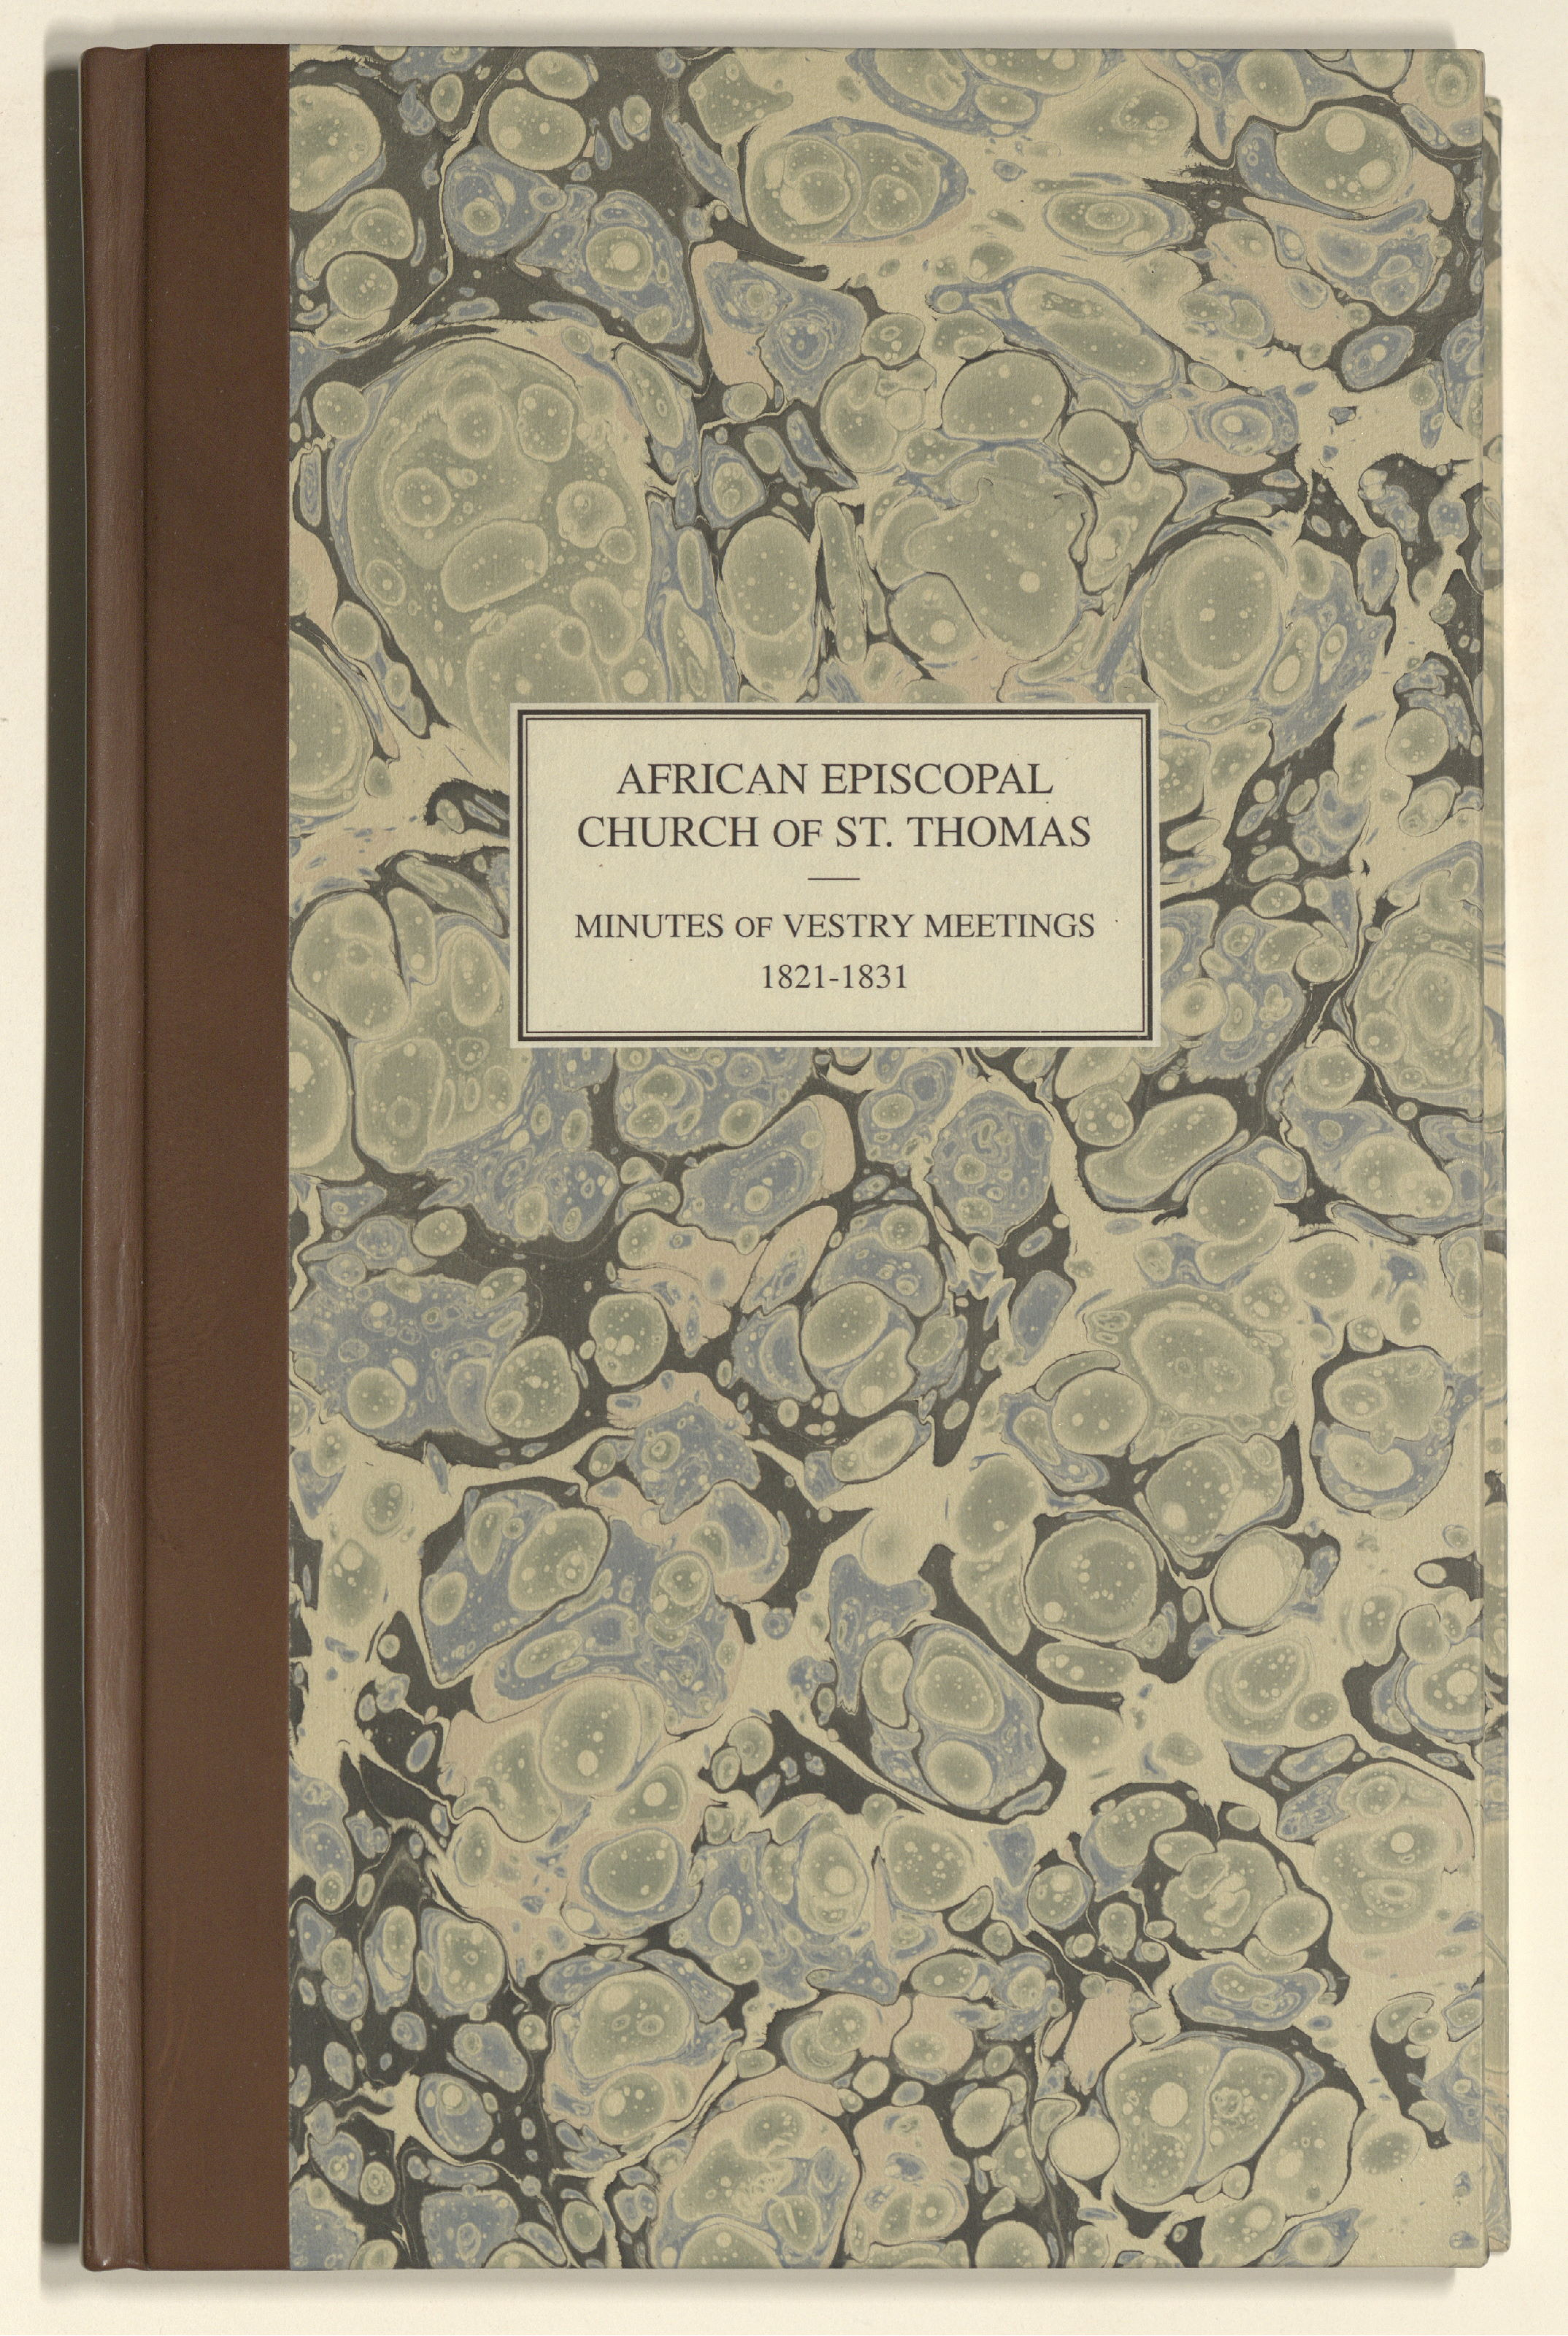 https://www.philageohistory.org/rdic-images/common/get-jpeg-book.cfm/StThomas.VestryMinutes1821-1831.001.FrontCover.jpg